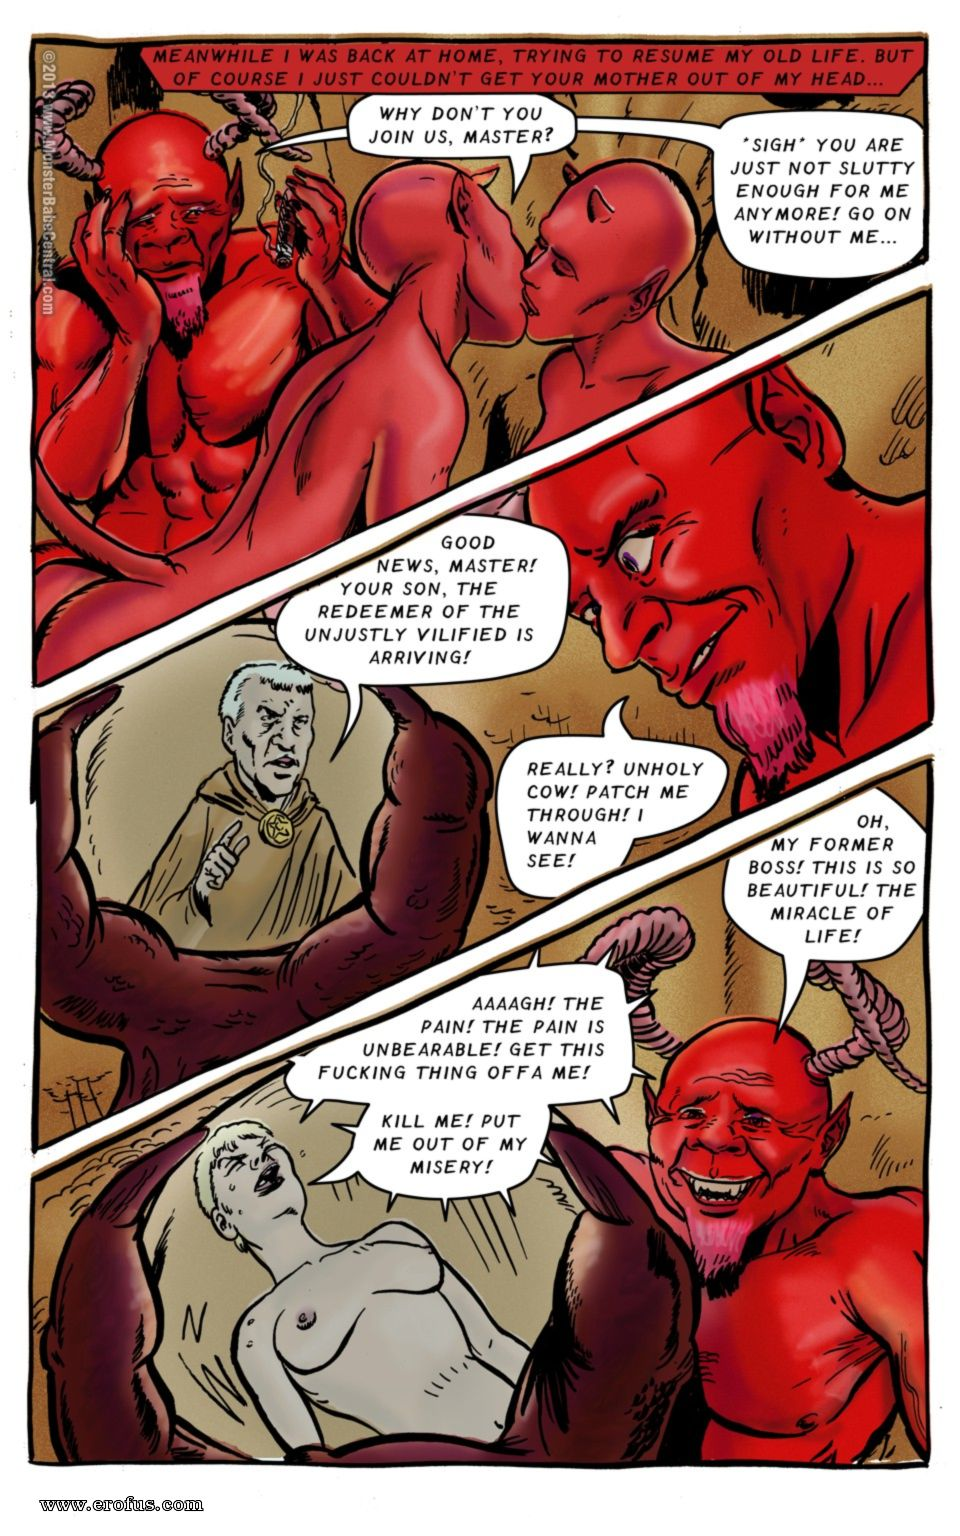 Babe Channel Porn page 68   central-comics/monster-babe-central/monster